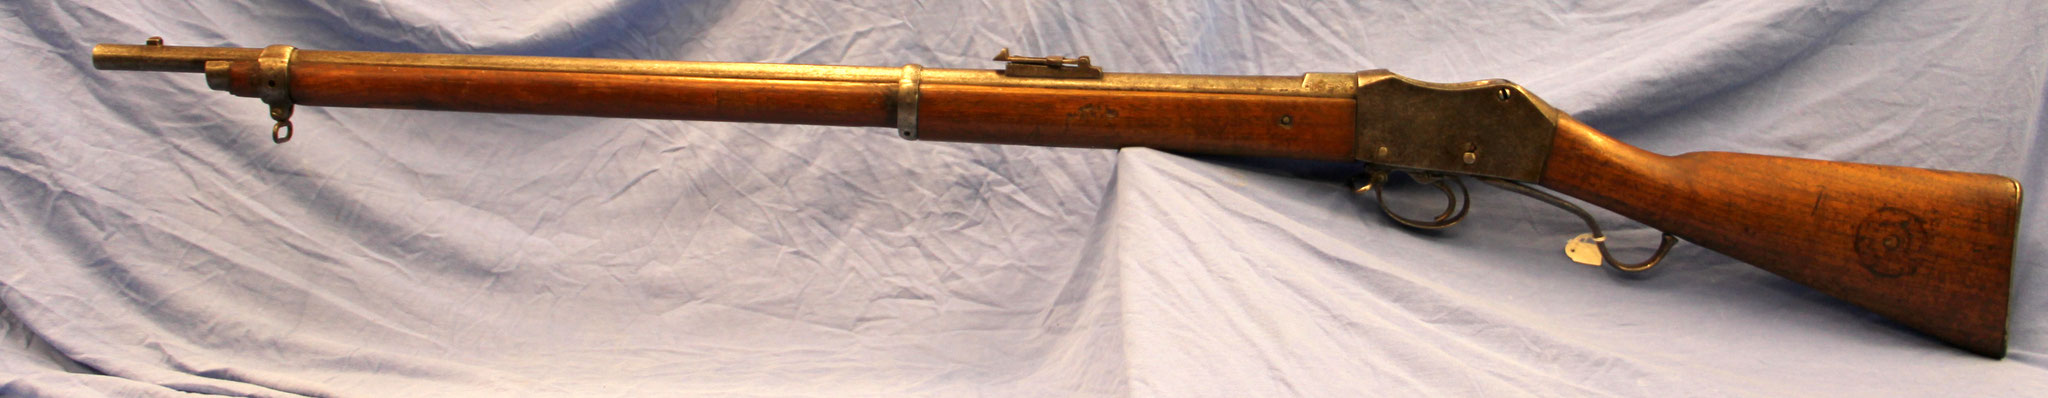 Enfield Martini Henry. € 450,-